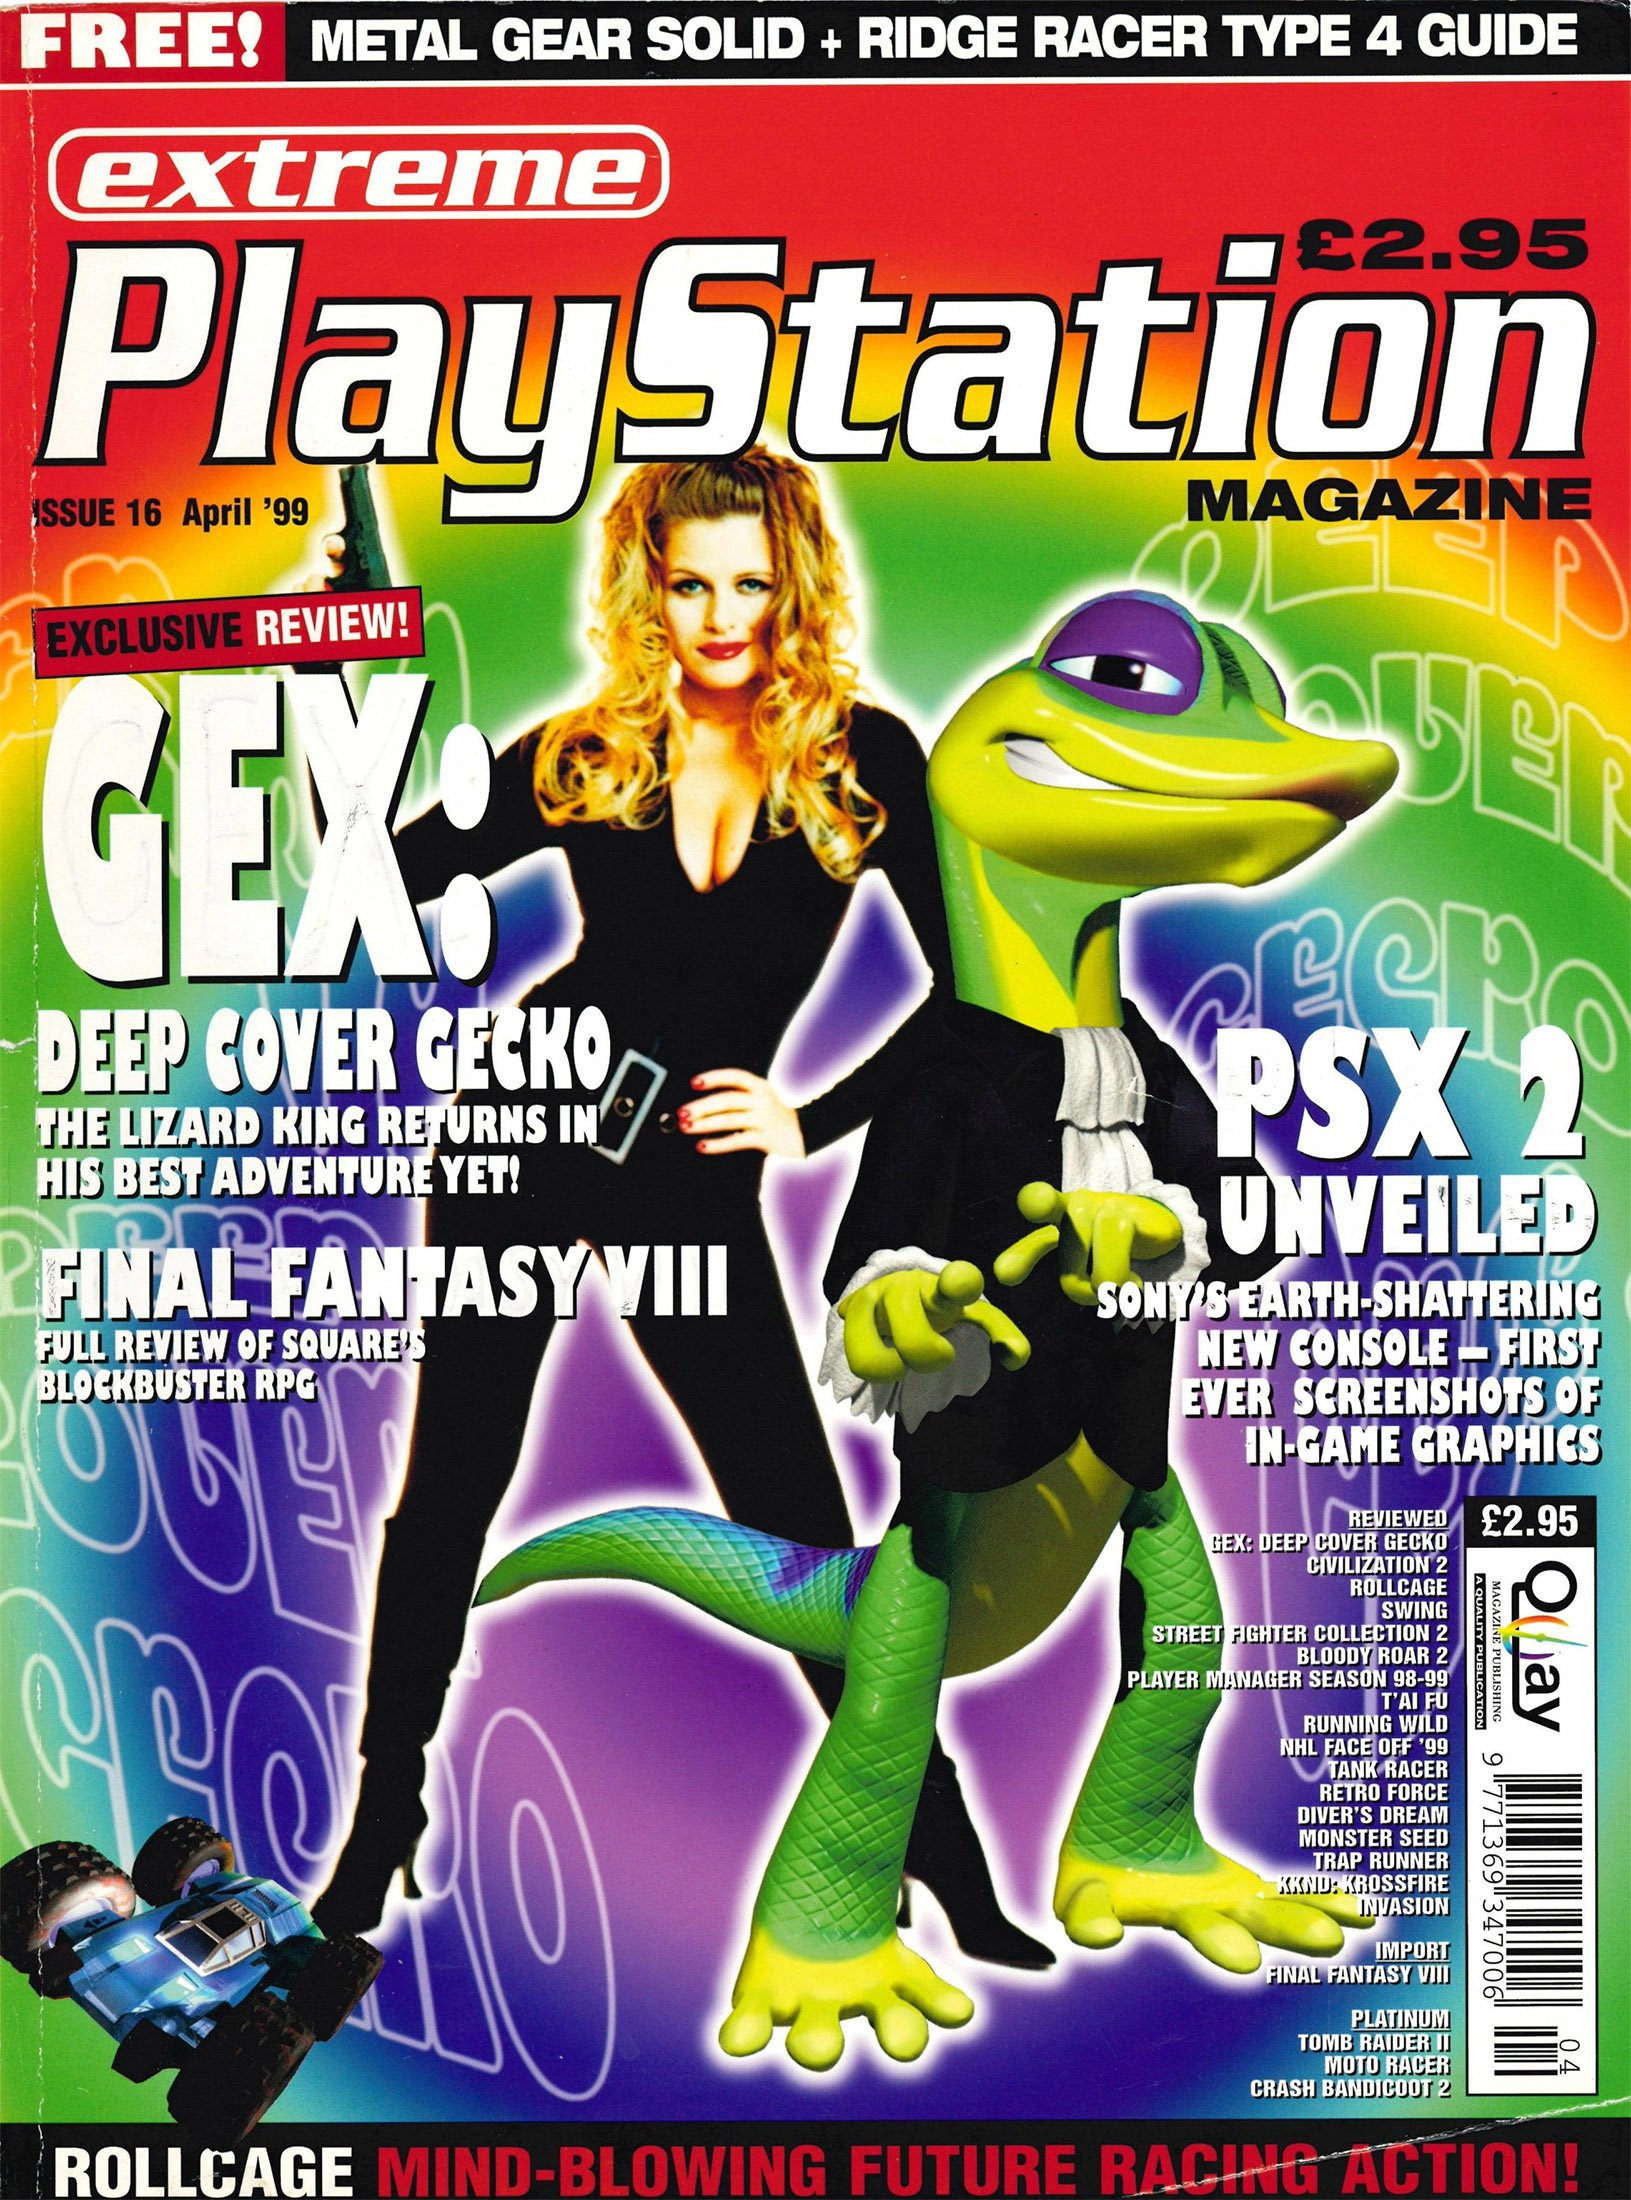 Extreme Playstation Issue 16 (April 1999)